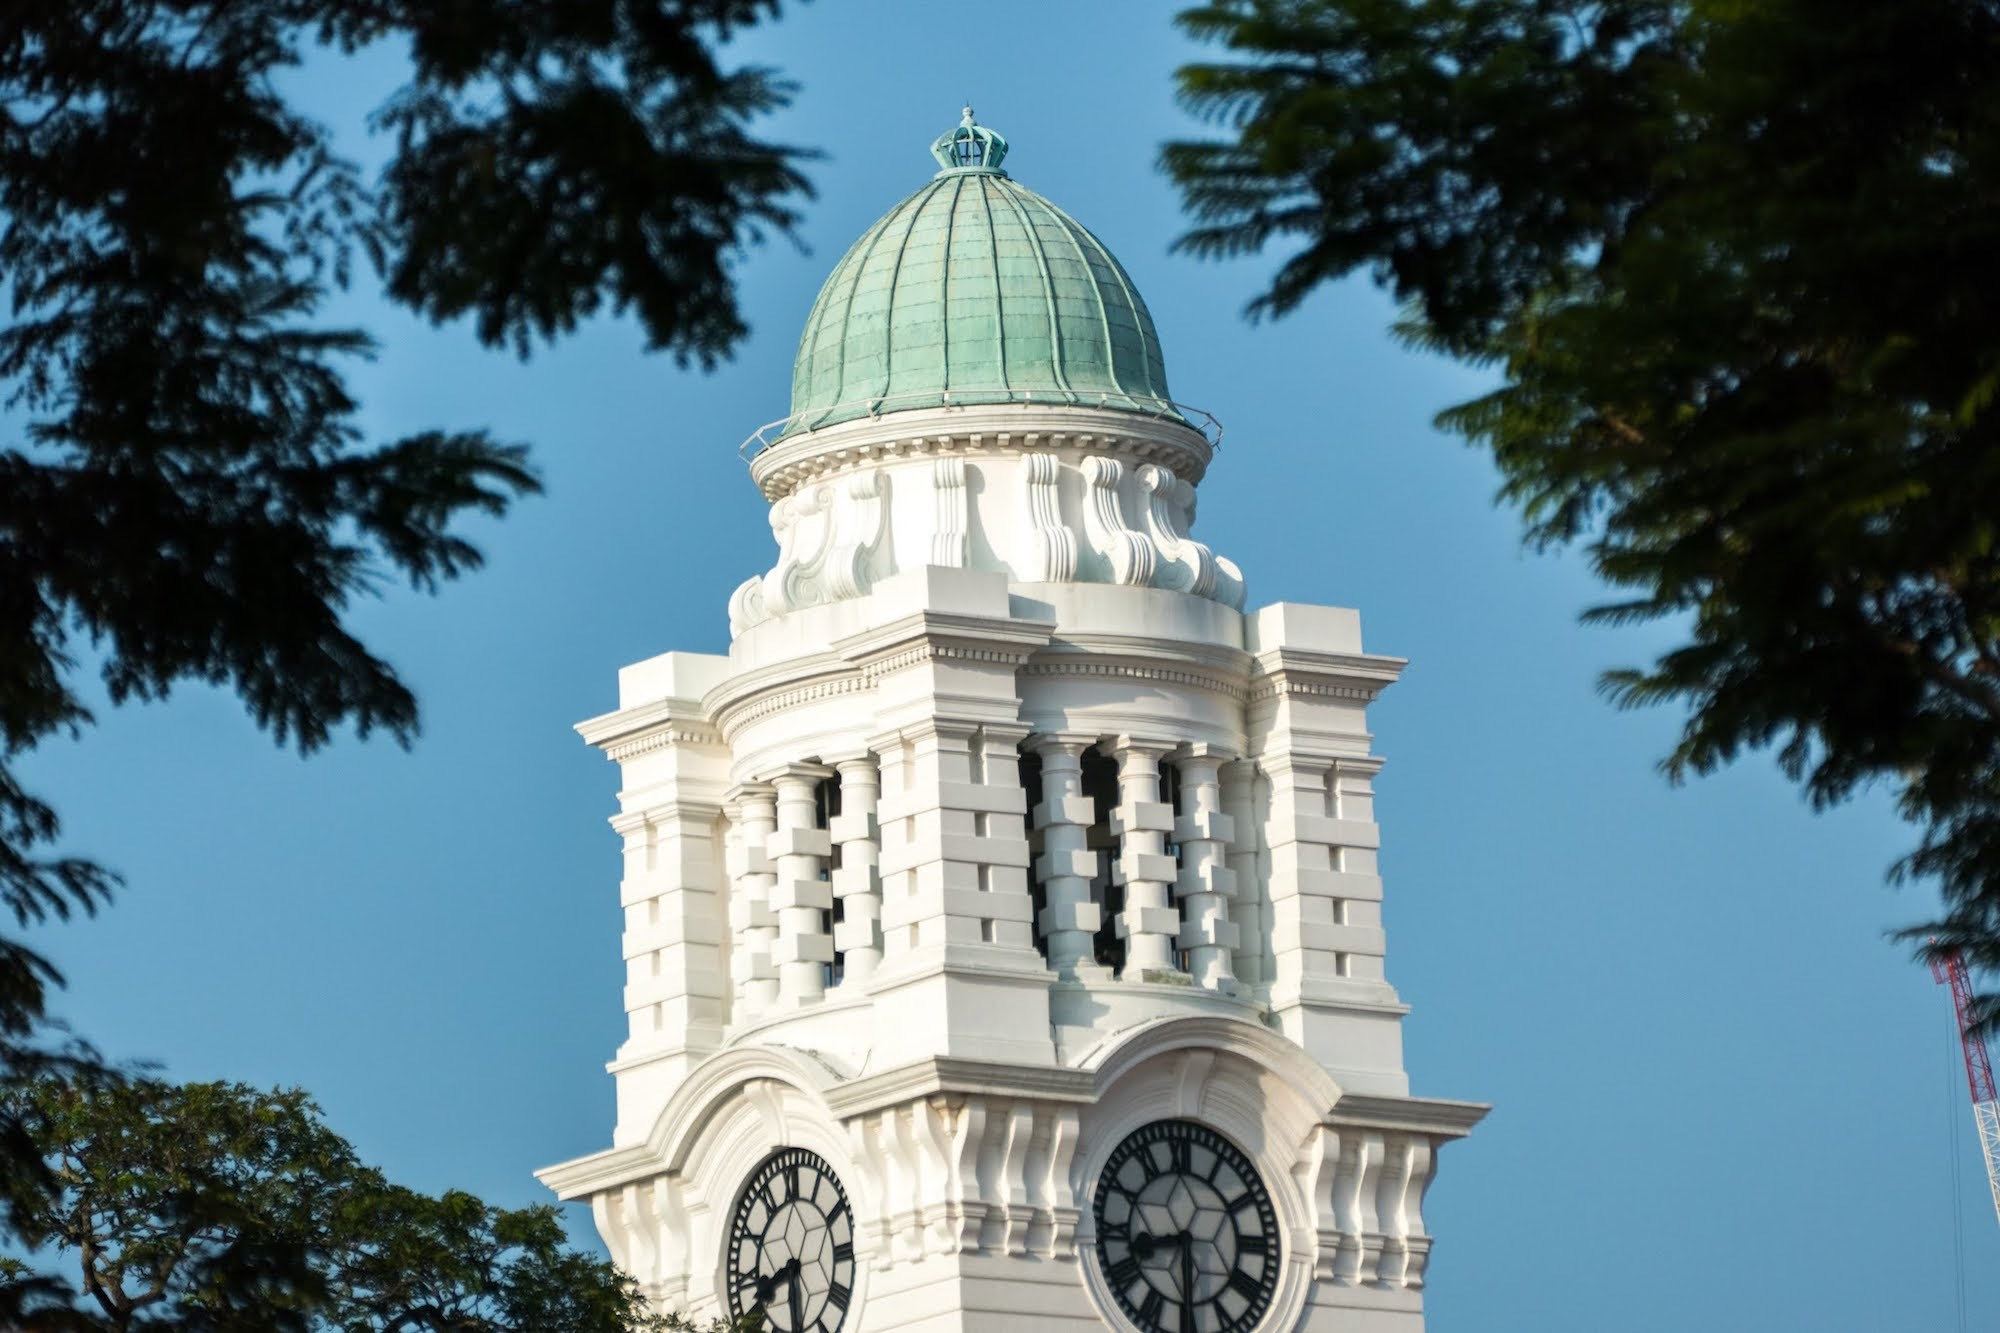 Be one of the first in history to climb the clock tower at Victoria Theatre and Concert Hall